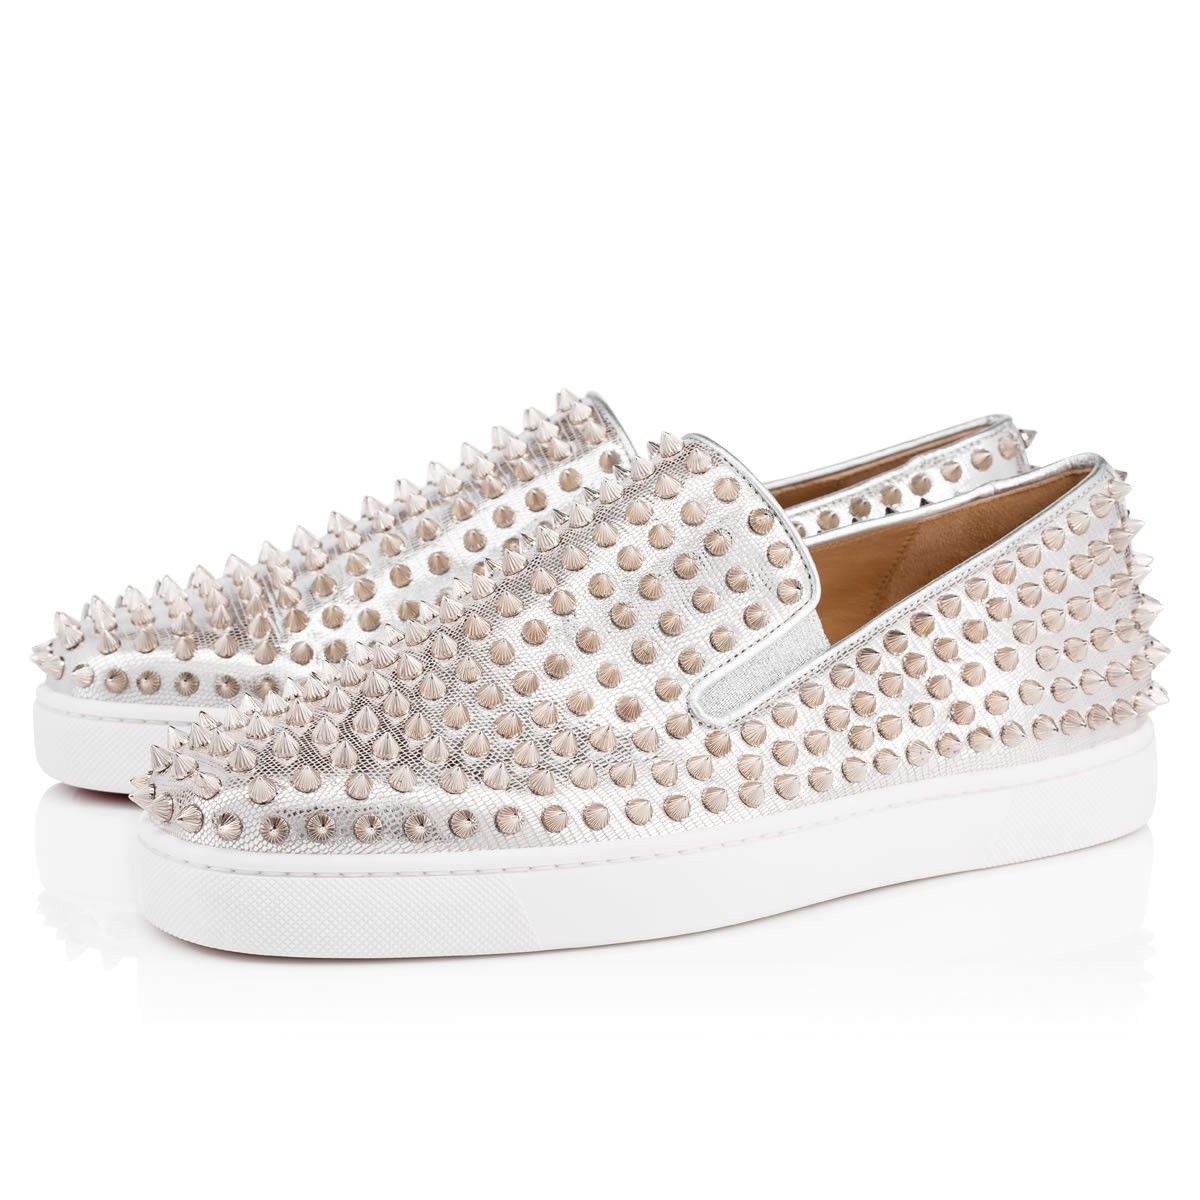 4e420fa8d31c Christian Louboutin United States Official Online Boutique - Roller-Boat  Men s Flat Silver Silver Leather available online. Discover more Men Shoes  by ...